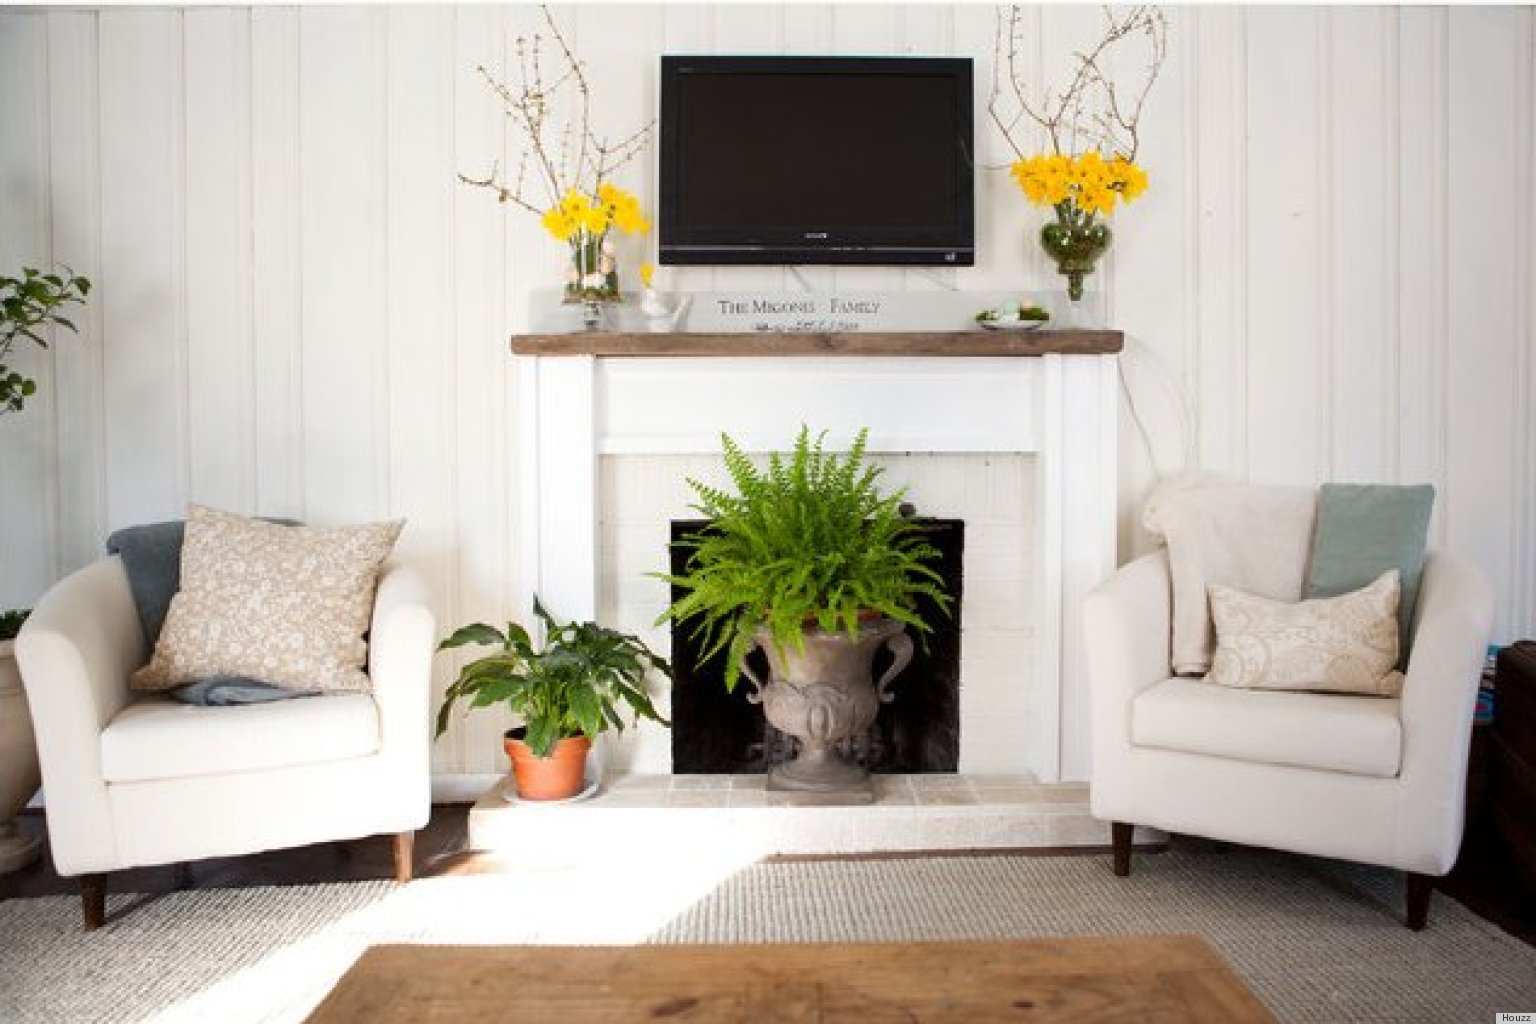 10 ways to decorate your fireplace in the summer, since you won't